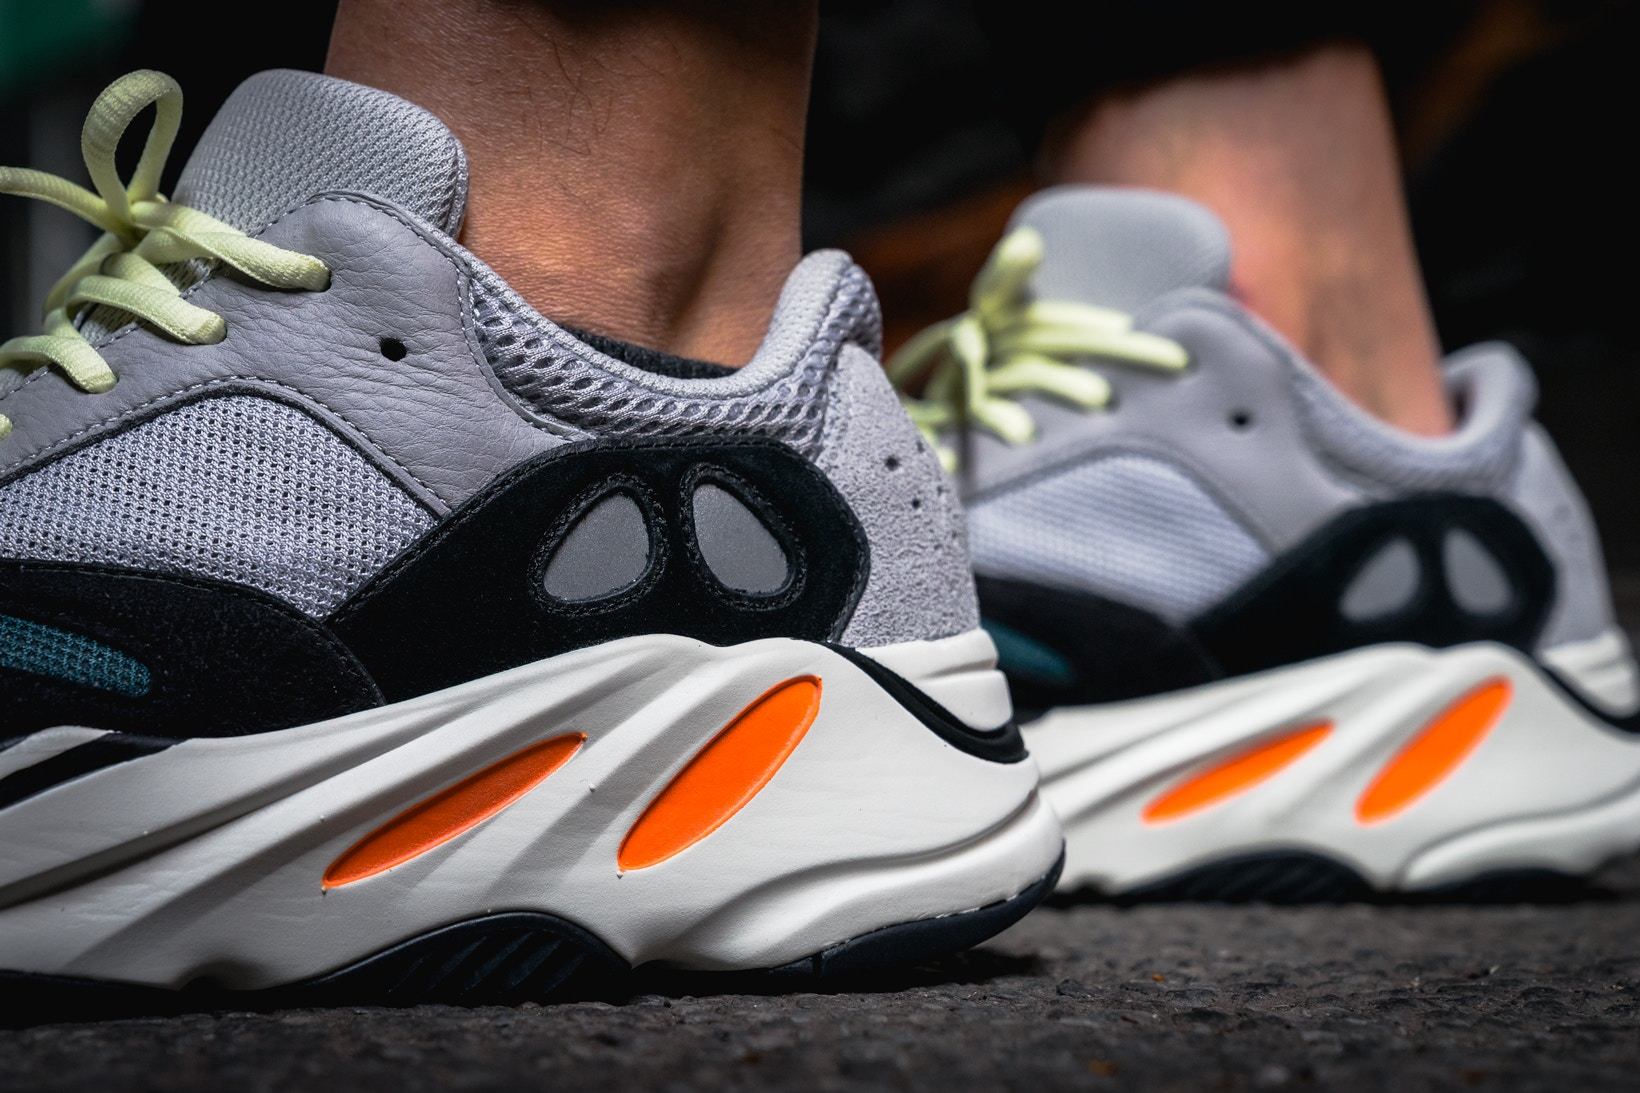 The Closest Look at The adidas YEEZY BOOST 700 Yet